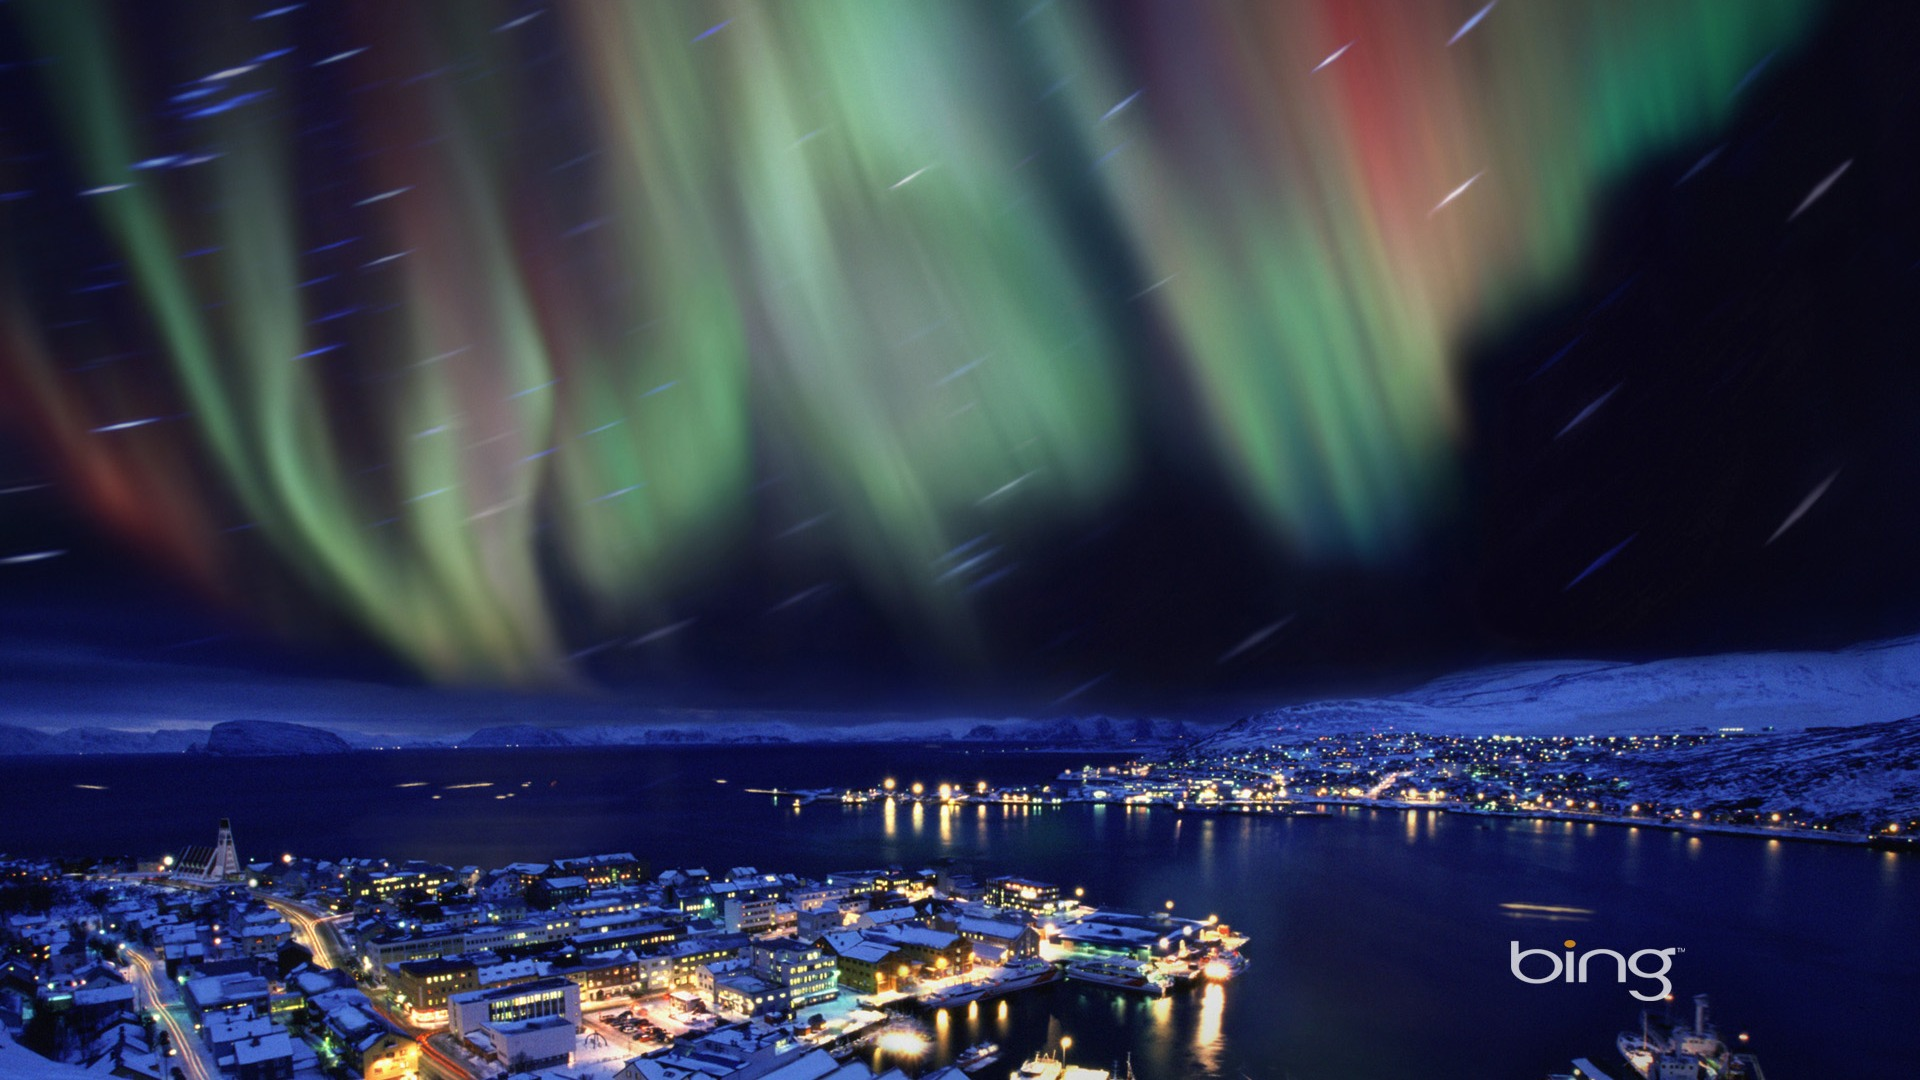 Hammerfest Norway Northern Lights over-Bing Wallpaper - 1920x1080